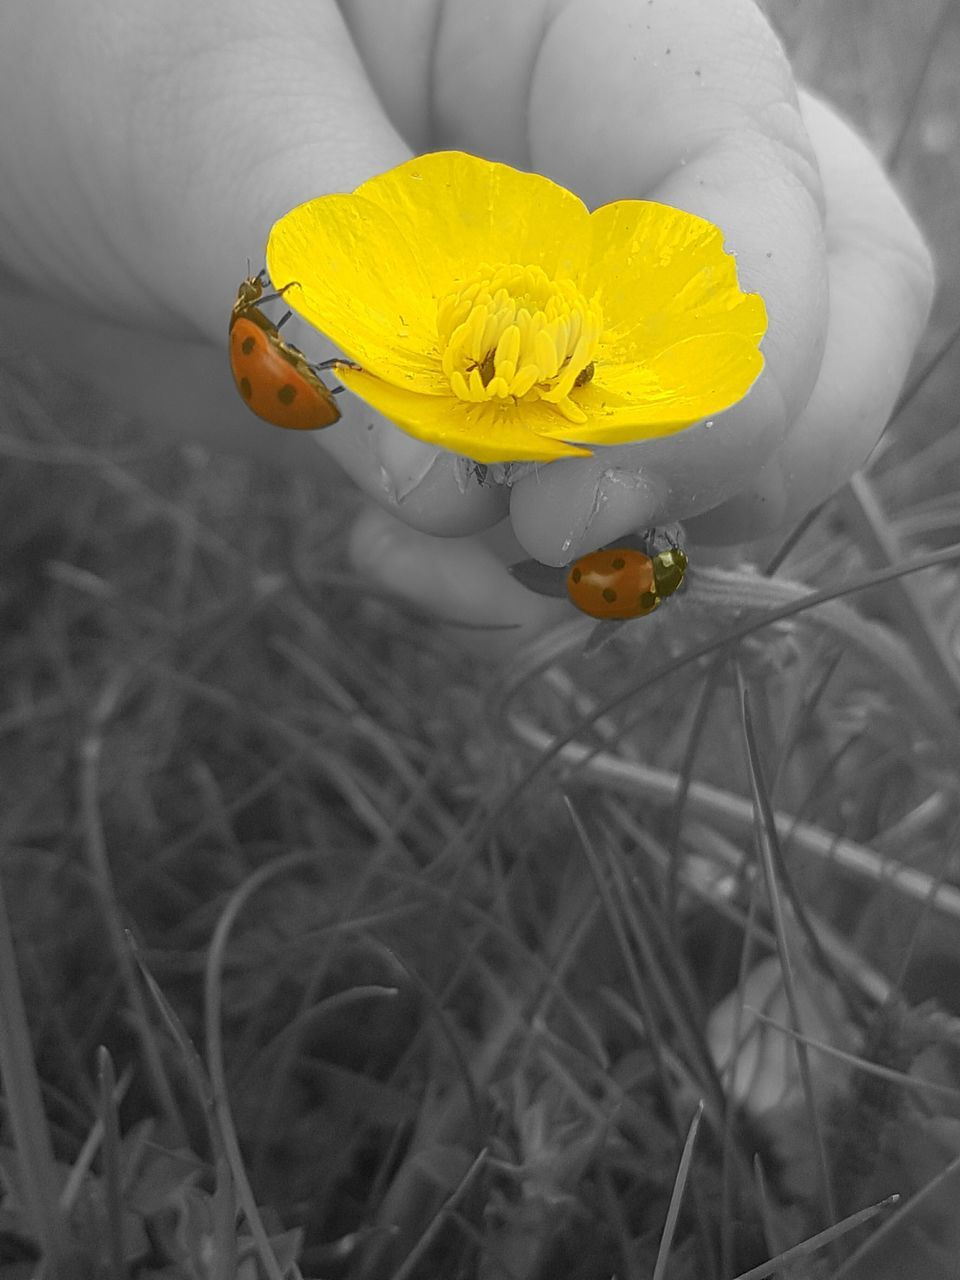 flower, yellow, petal, fragility, one person, beauty in nature, nature, flower head, human hand, freshness, close-up, human body part, high angle view, outdoors, real people, plant, growth, day, people